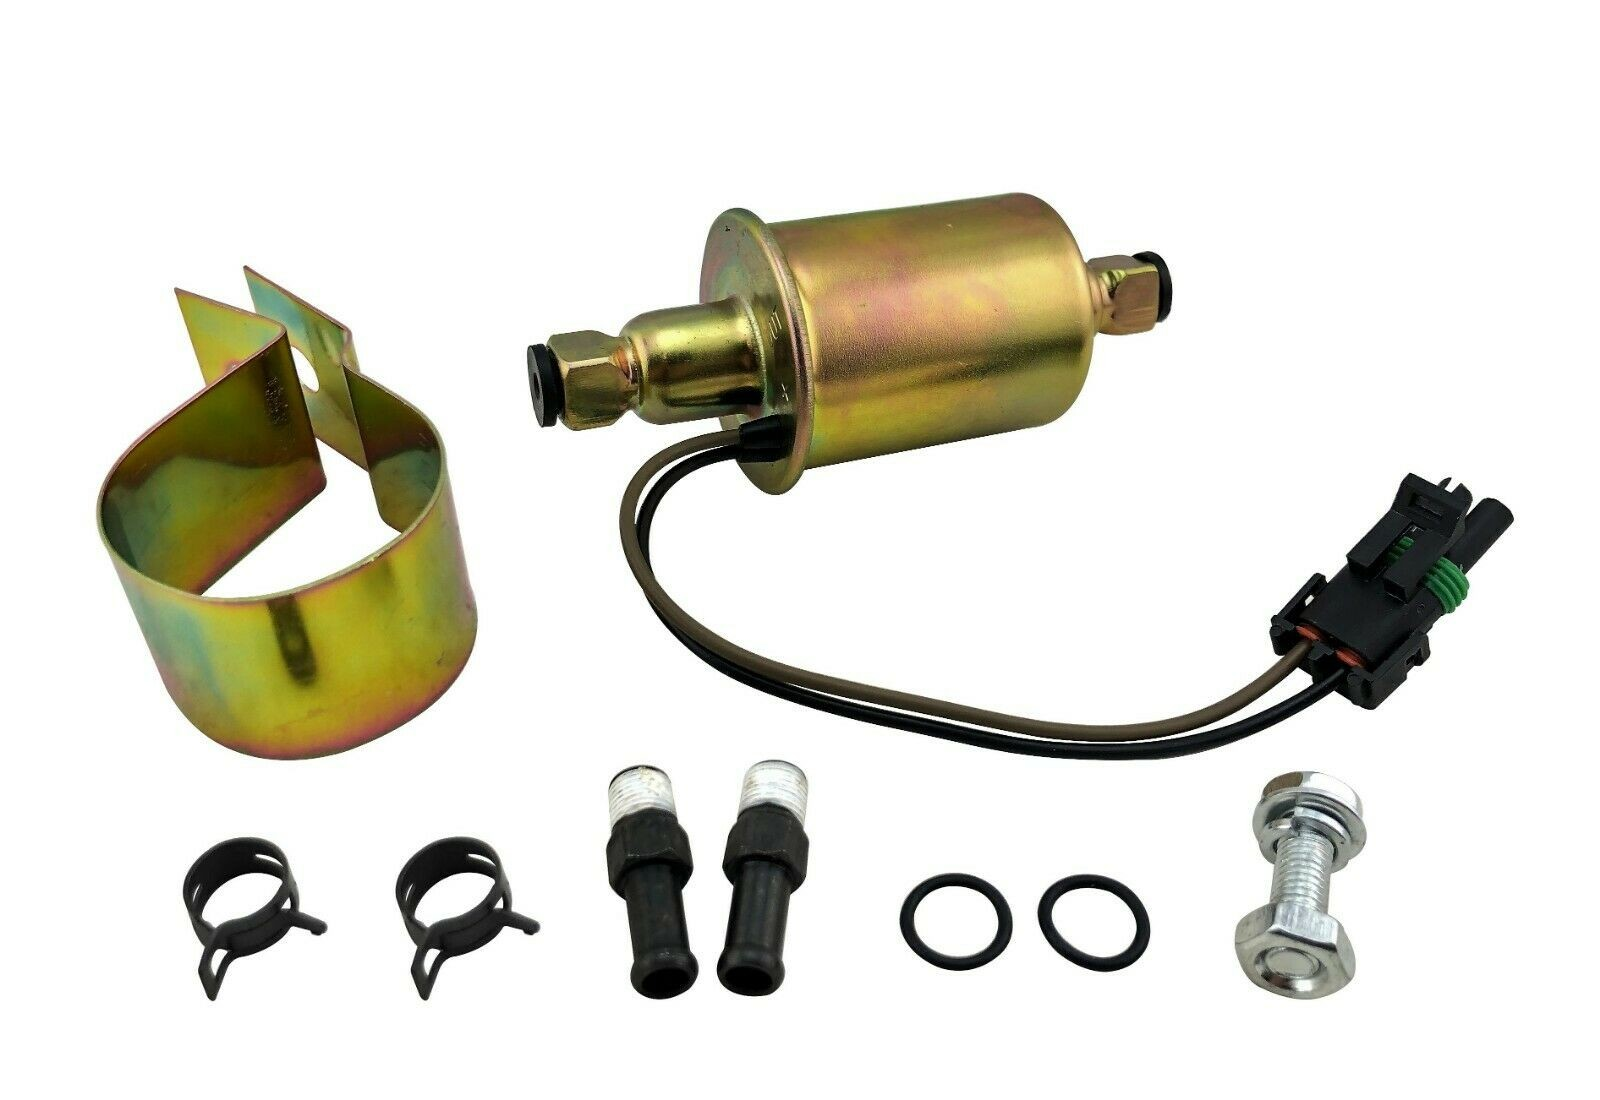 FUEL LIFT PUMP for 1988-93 & 99-02 GM Frame Mount DIESEL 6.2L 6.5L GAS 5.7L 7.4L